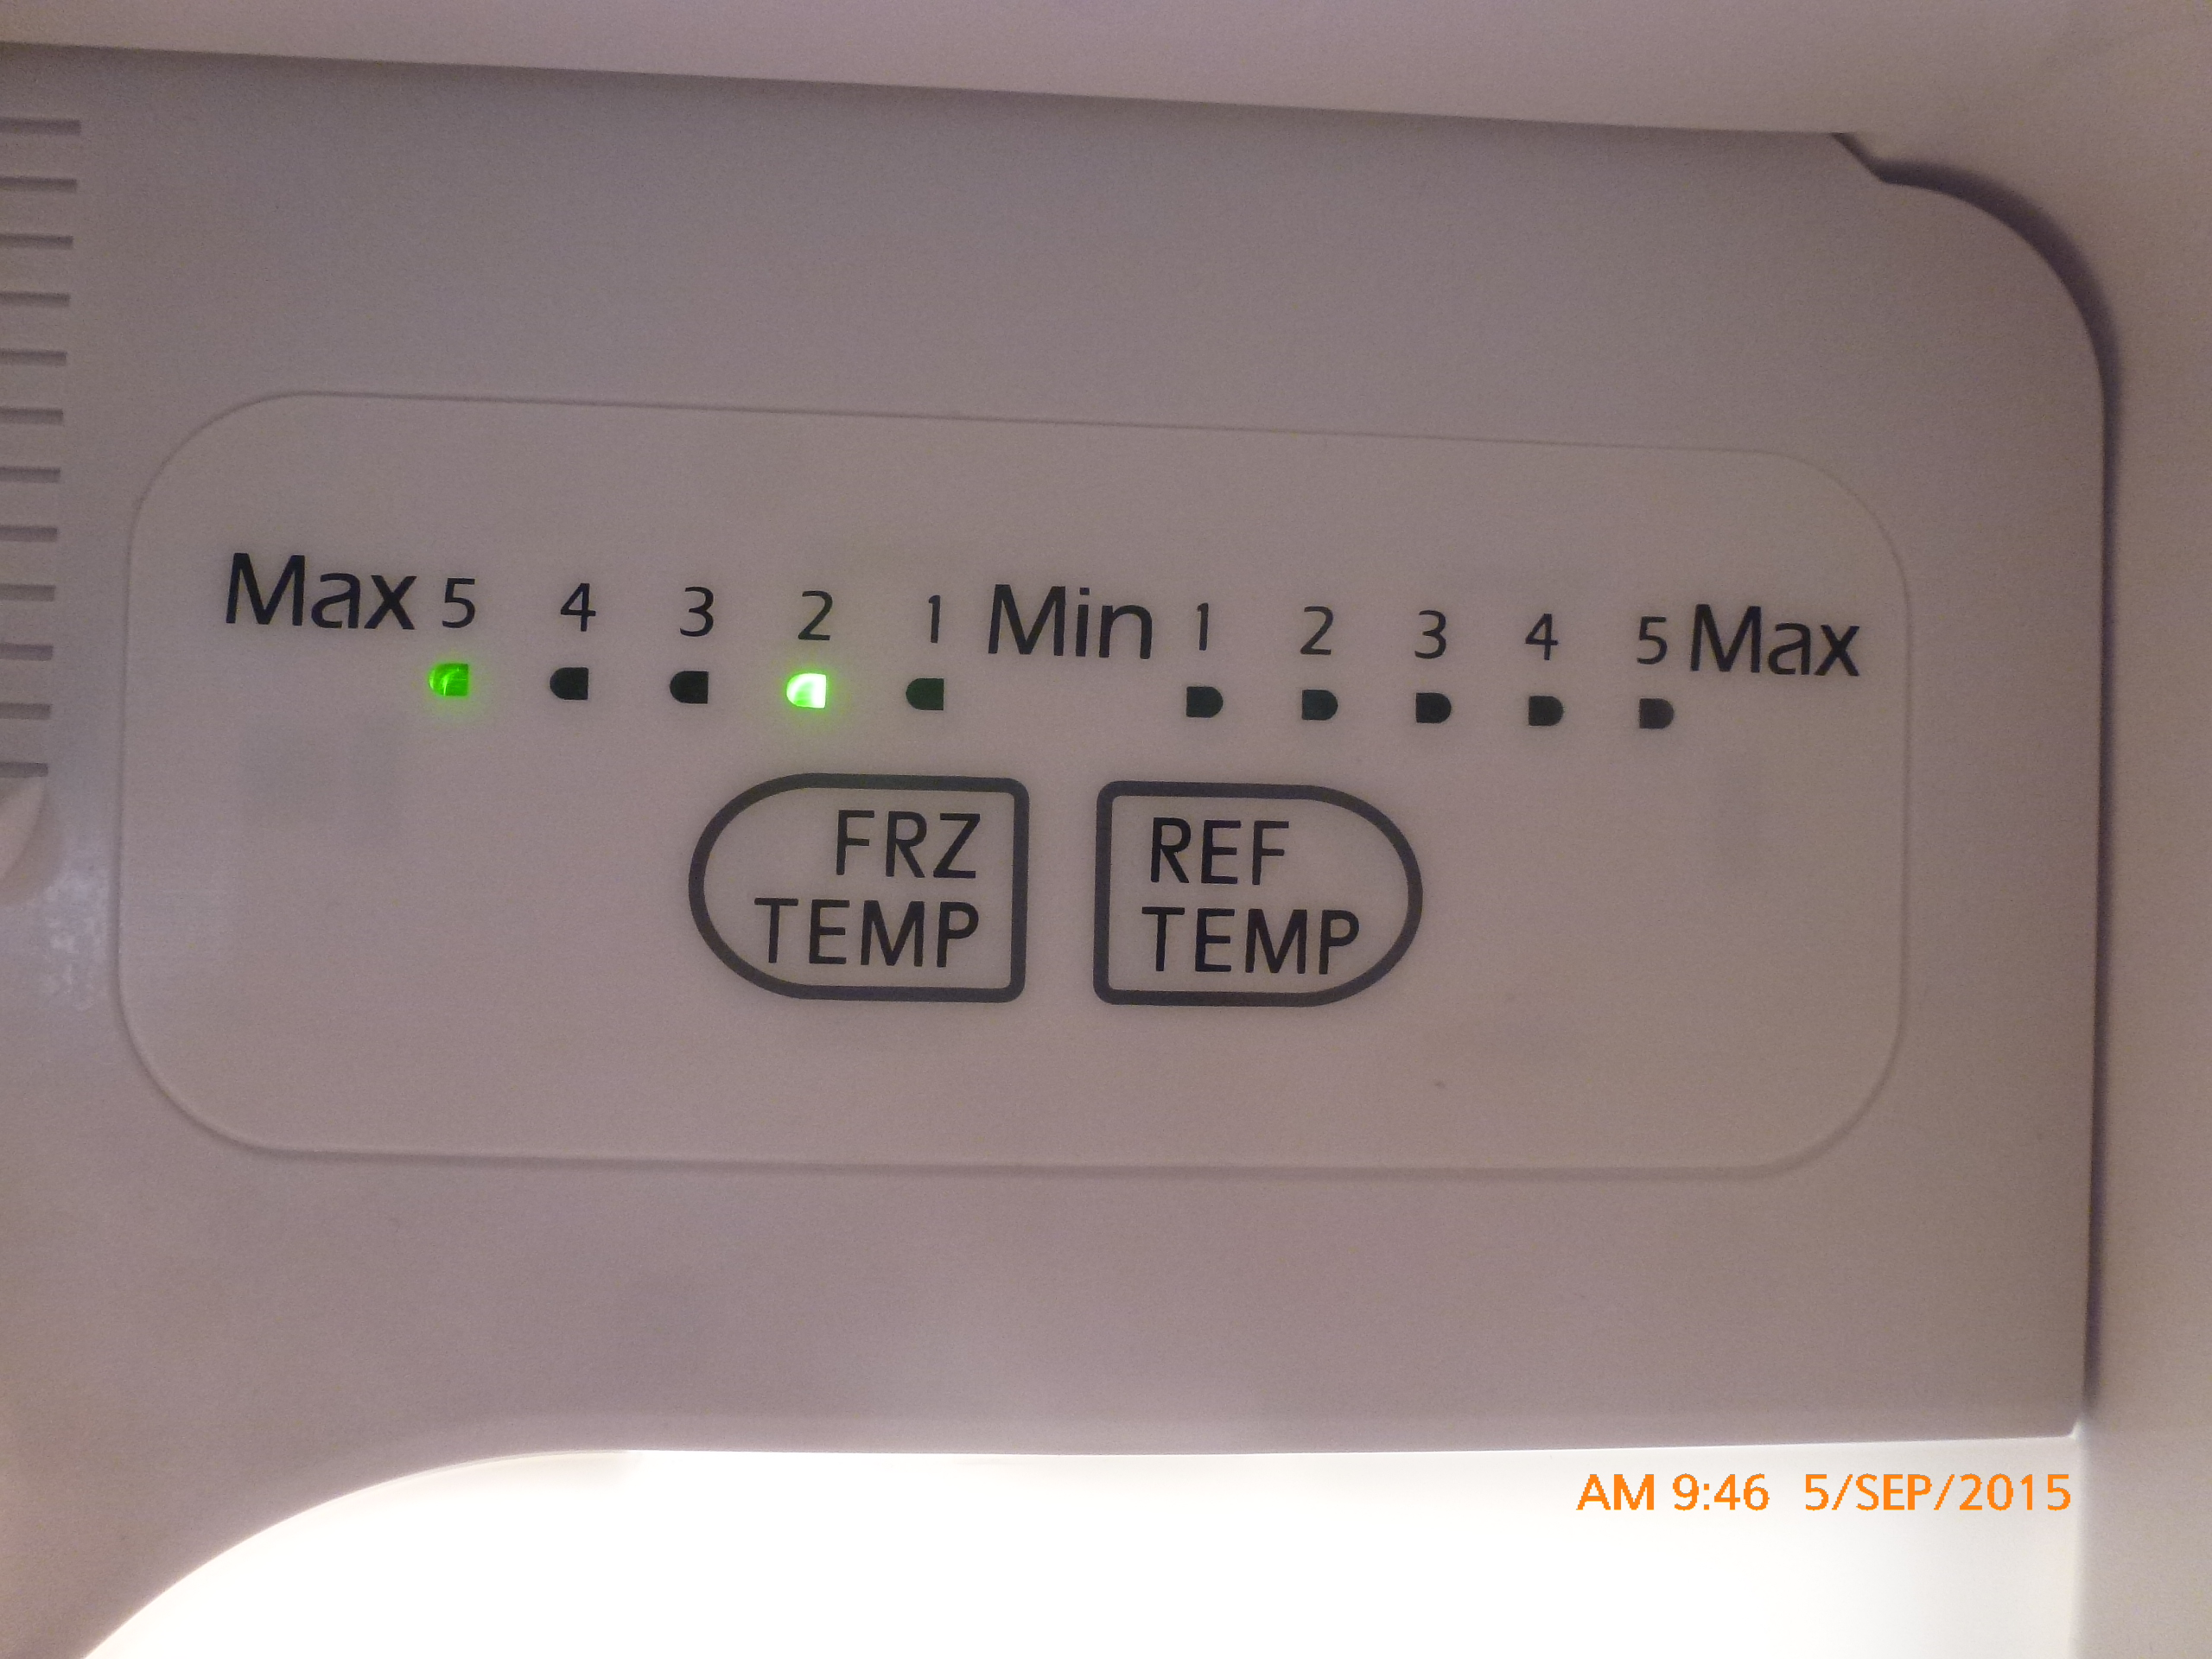 I have a fault code on my LG refrigerator model GC-B197CSW The LED